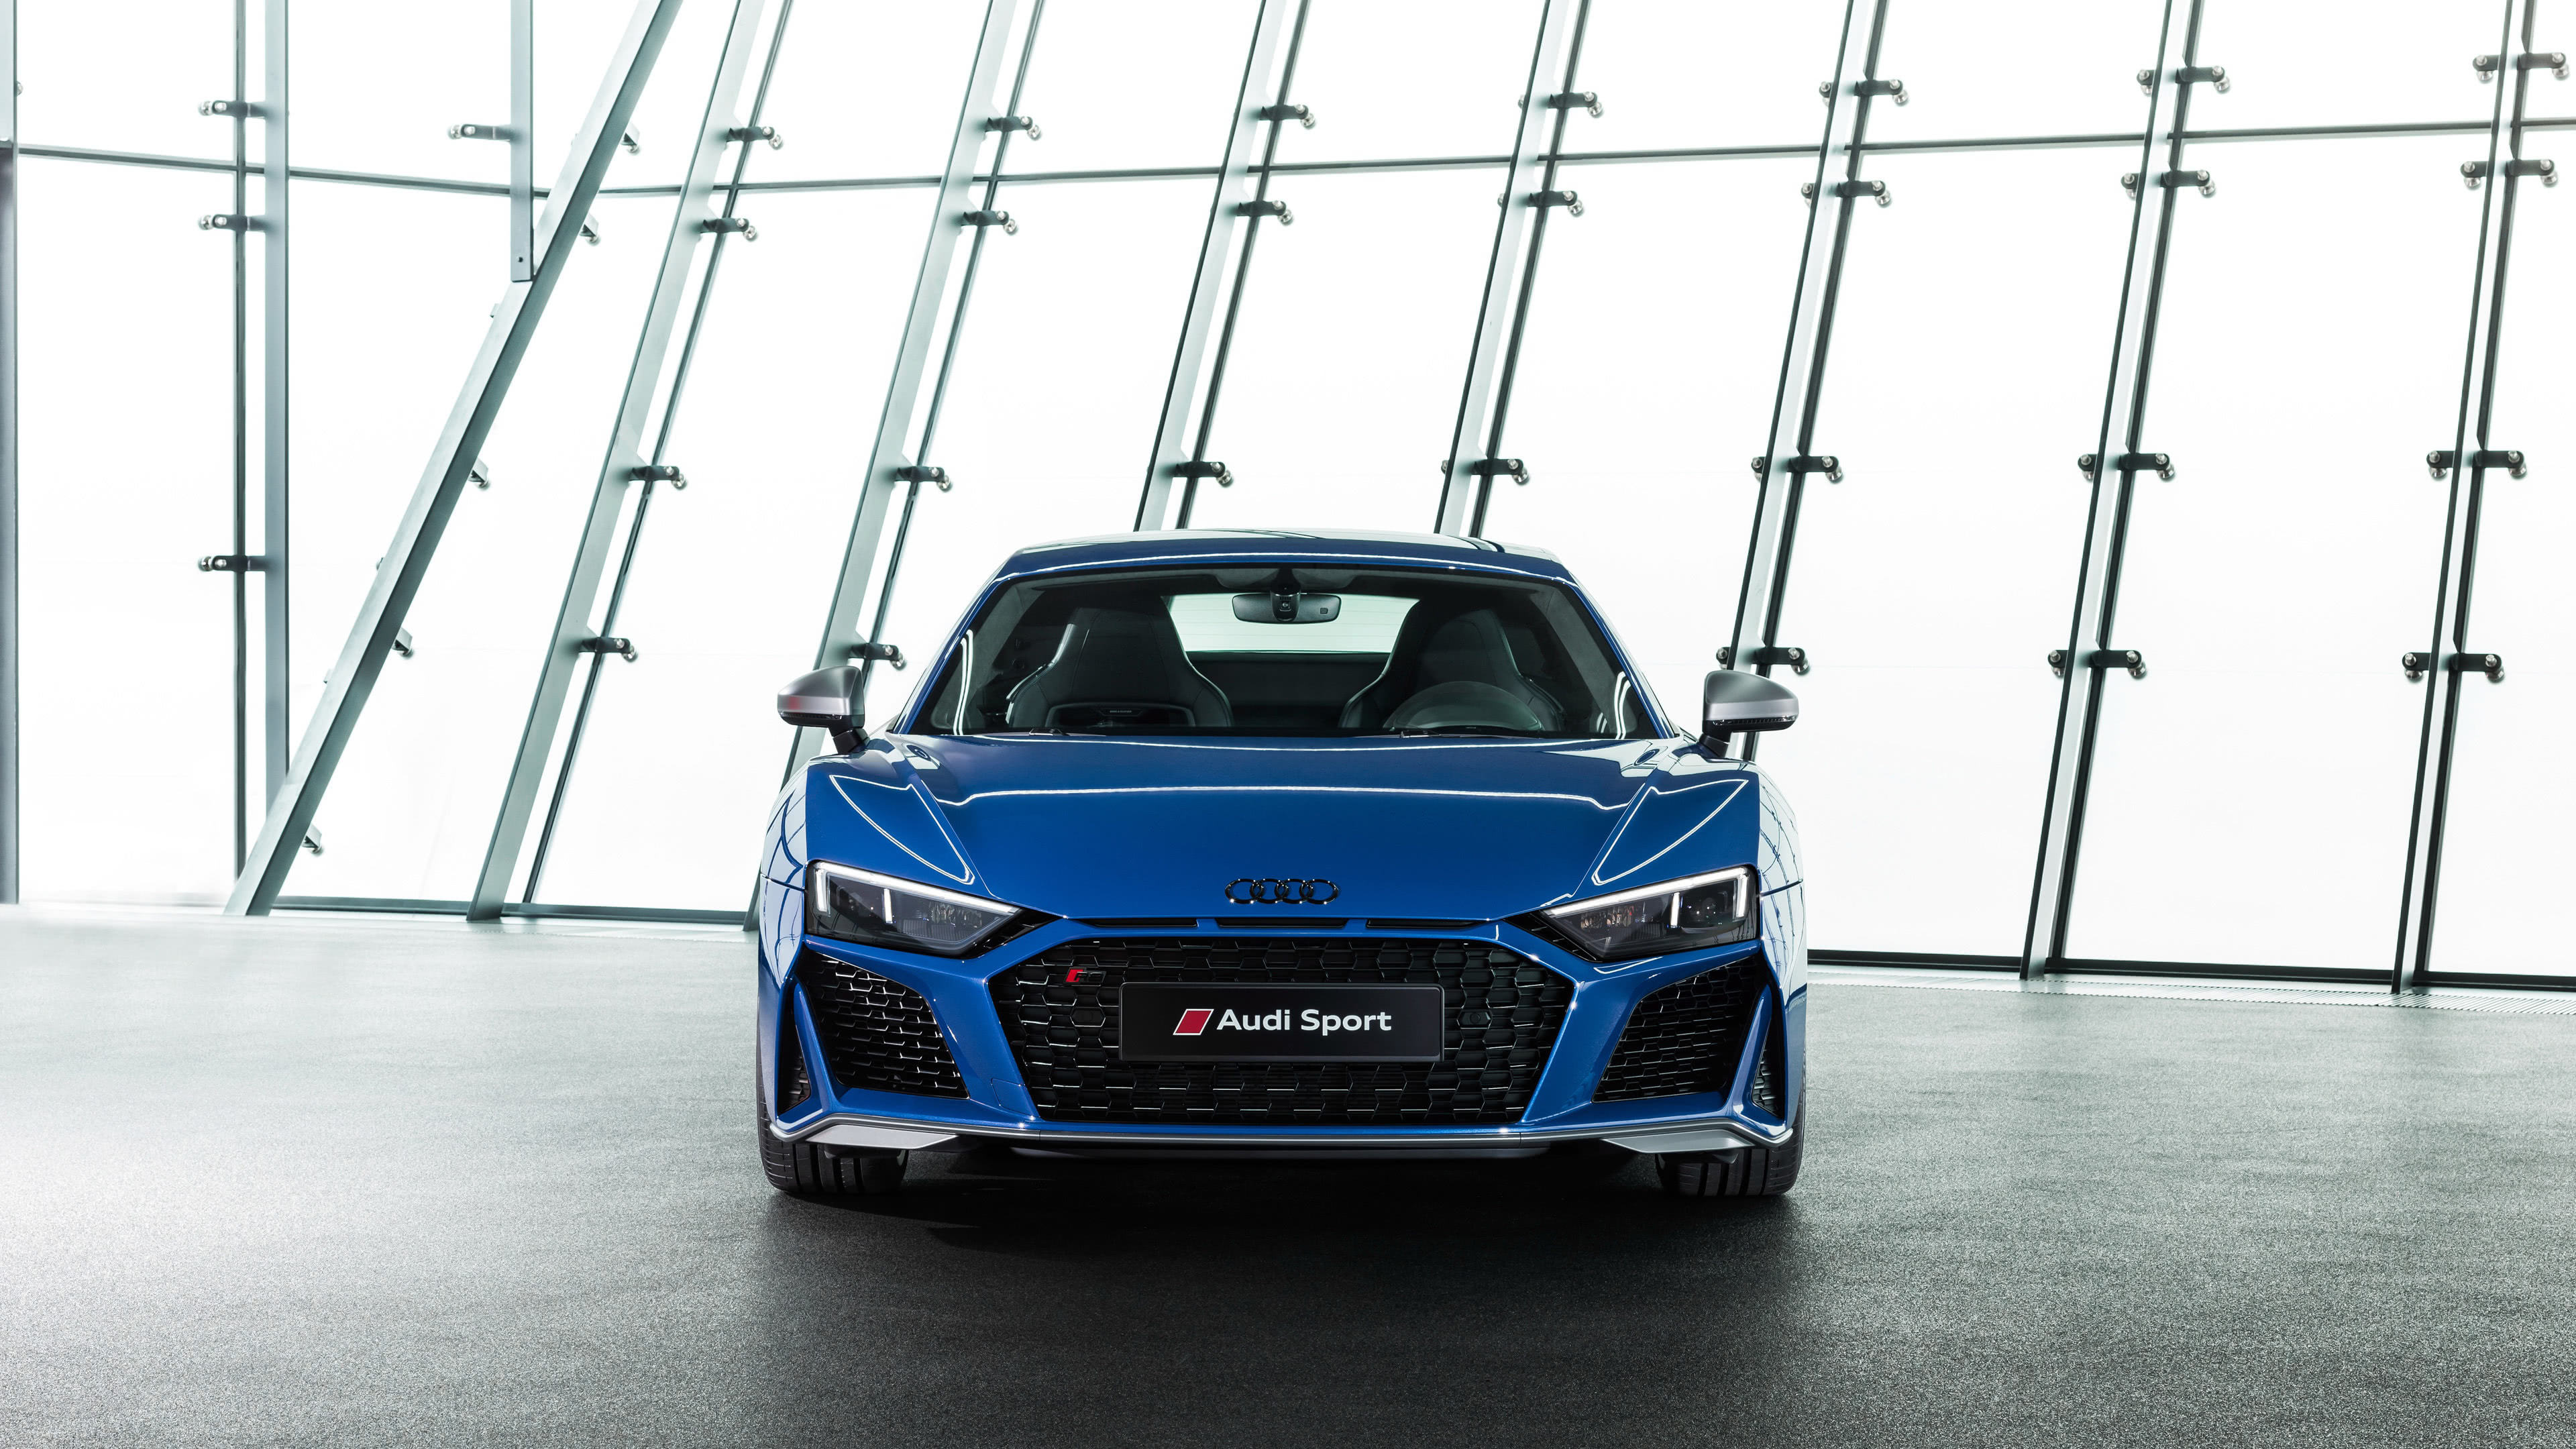 audi r8 blue front uhd 4k wallpaper